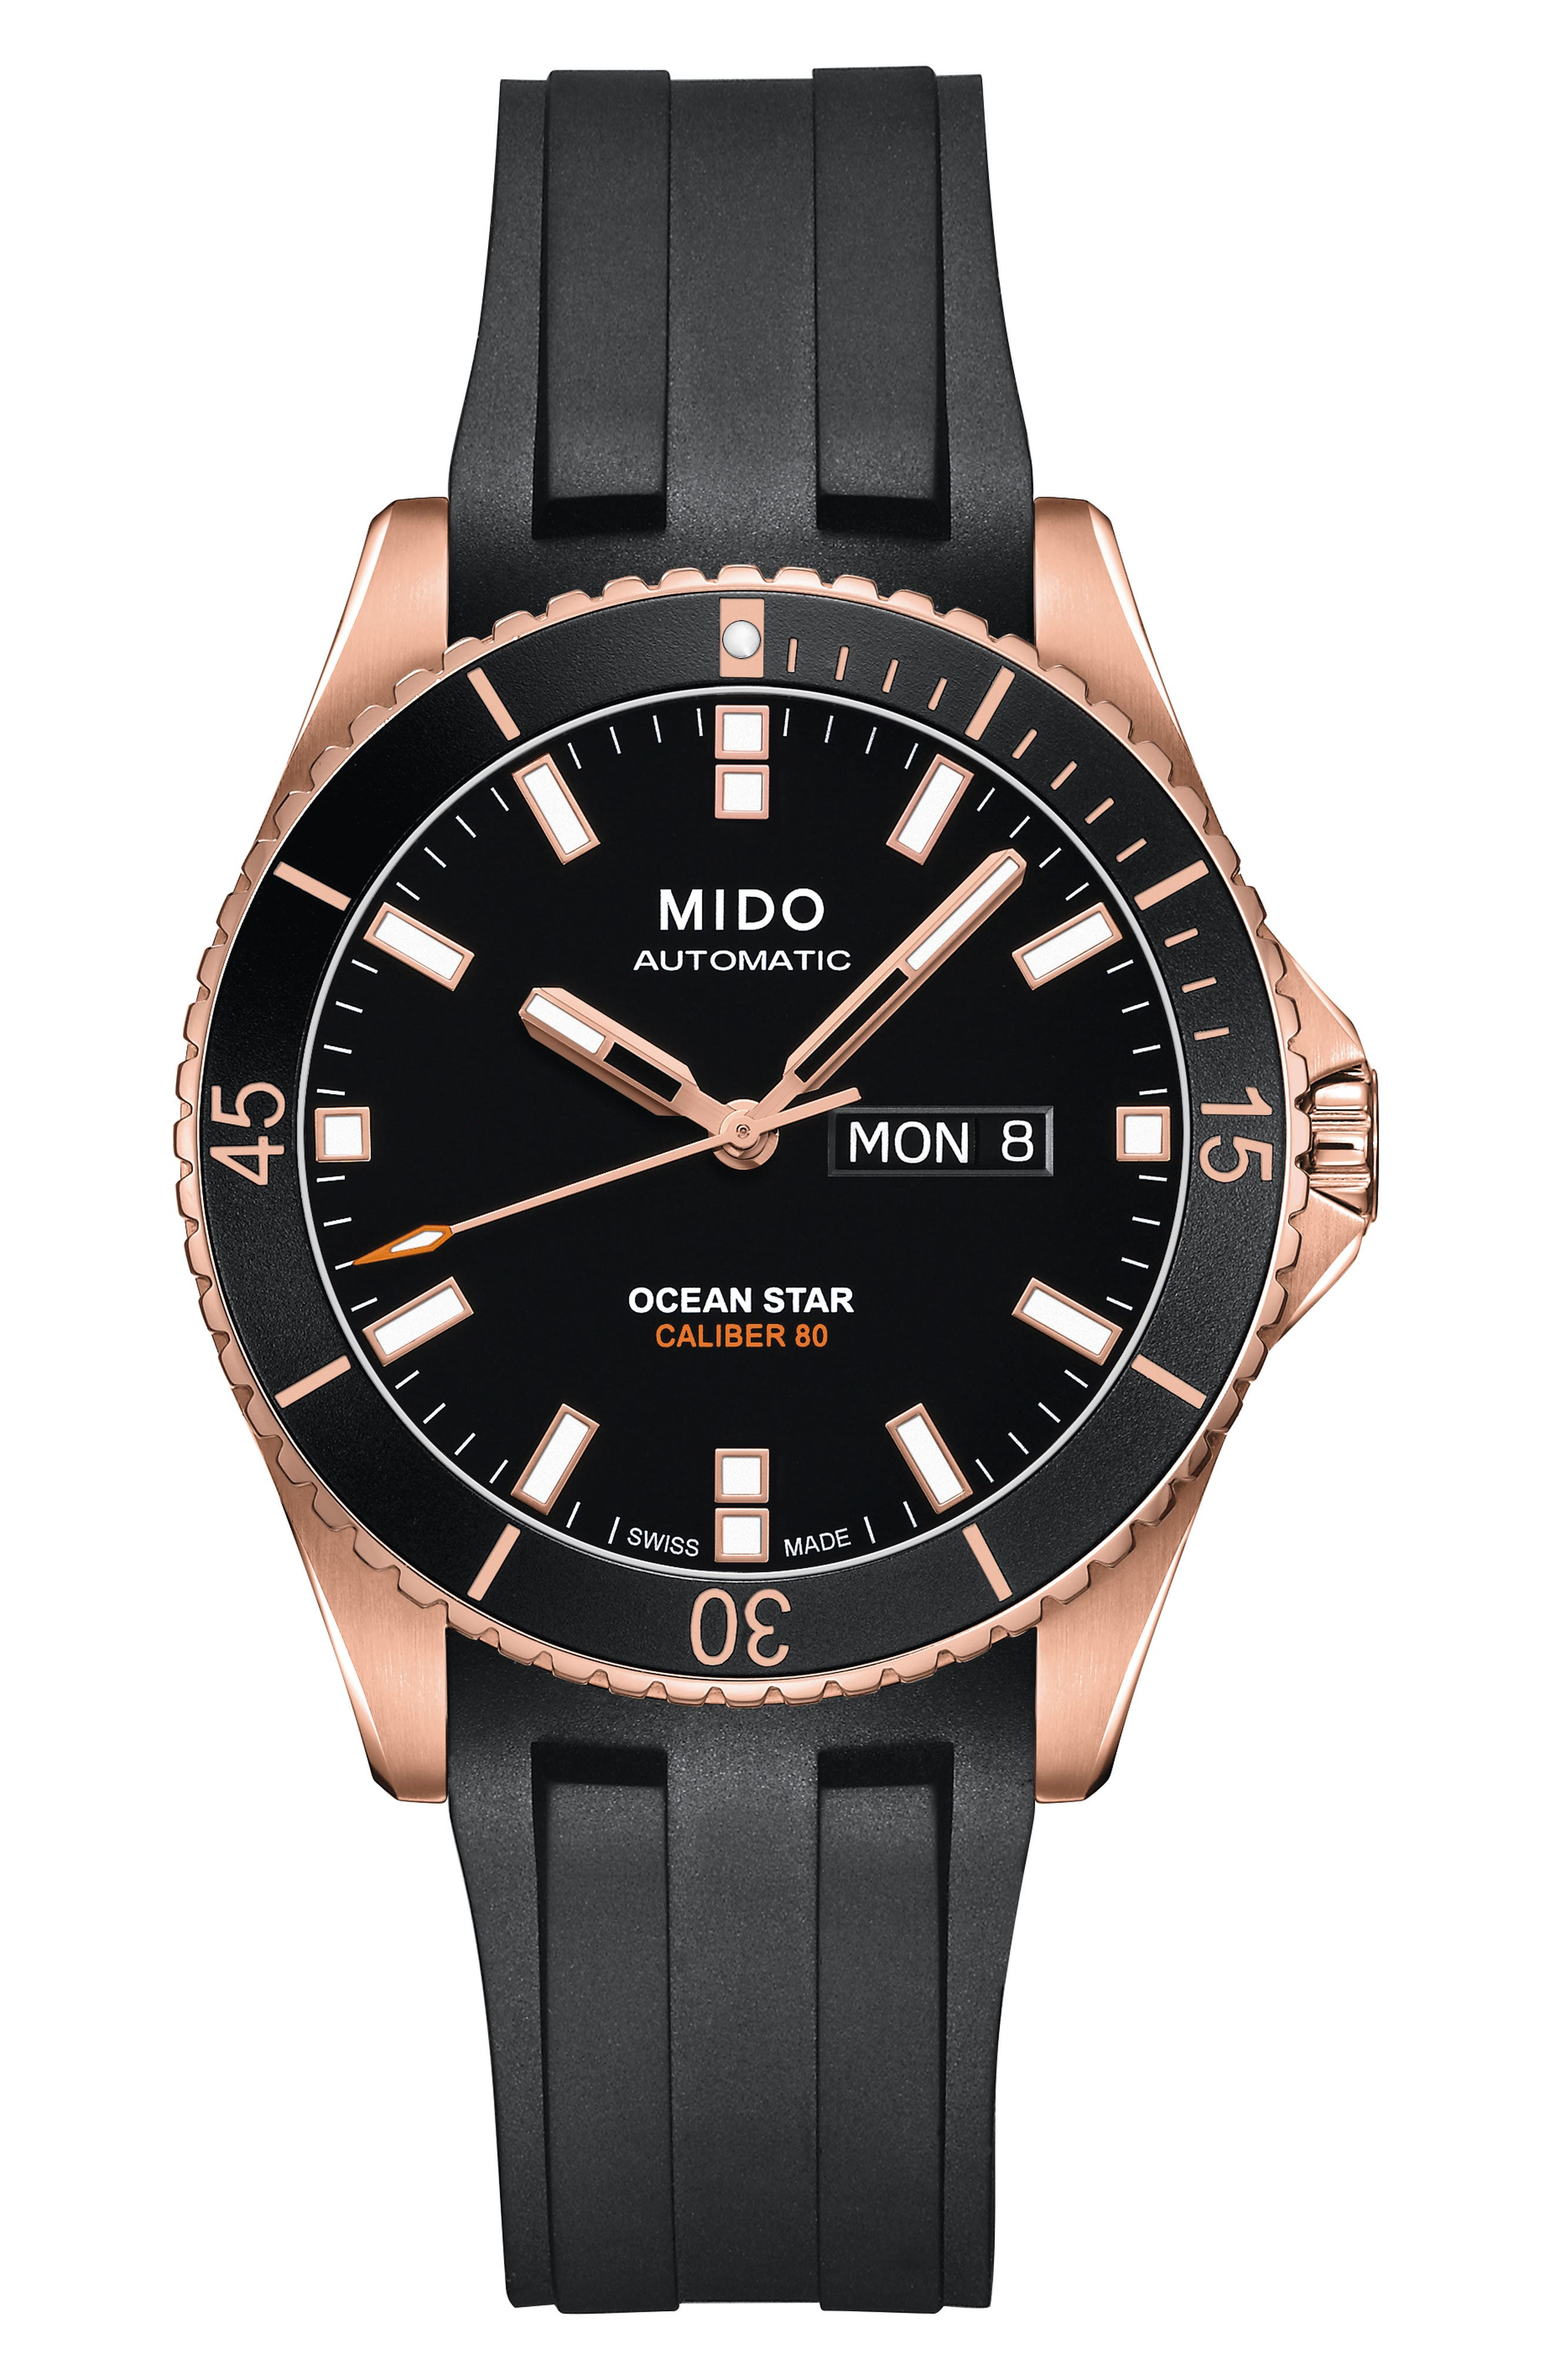 Ocean Star Automatic Rubber Strap Watch